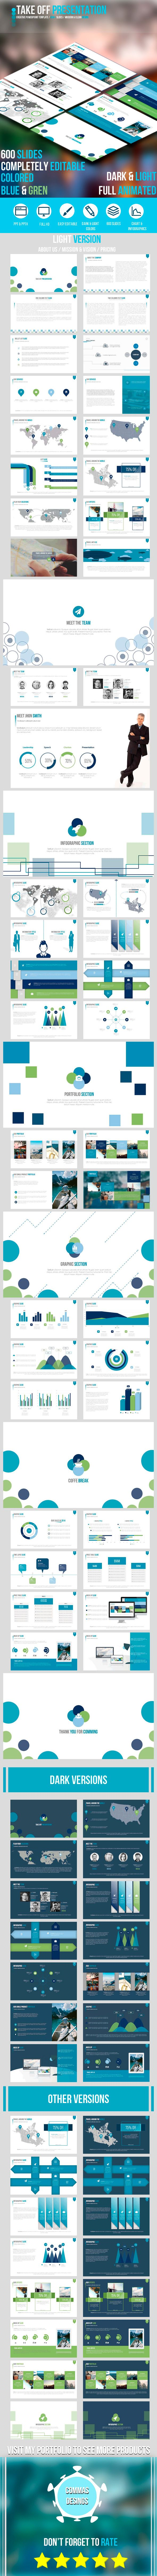 Take Off Presentation (Powerpoint Templates) Preview 20full